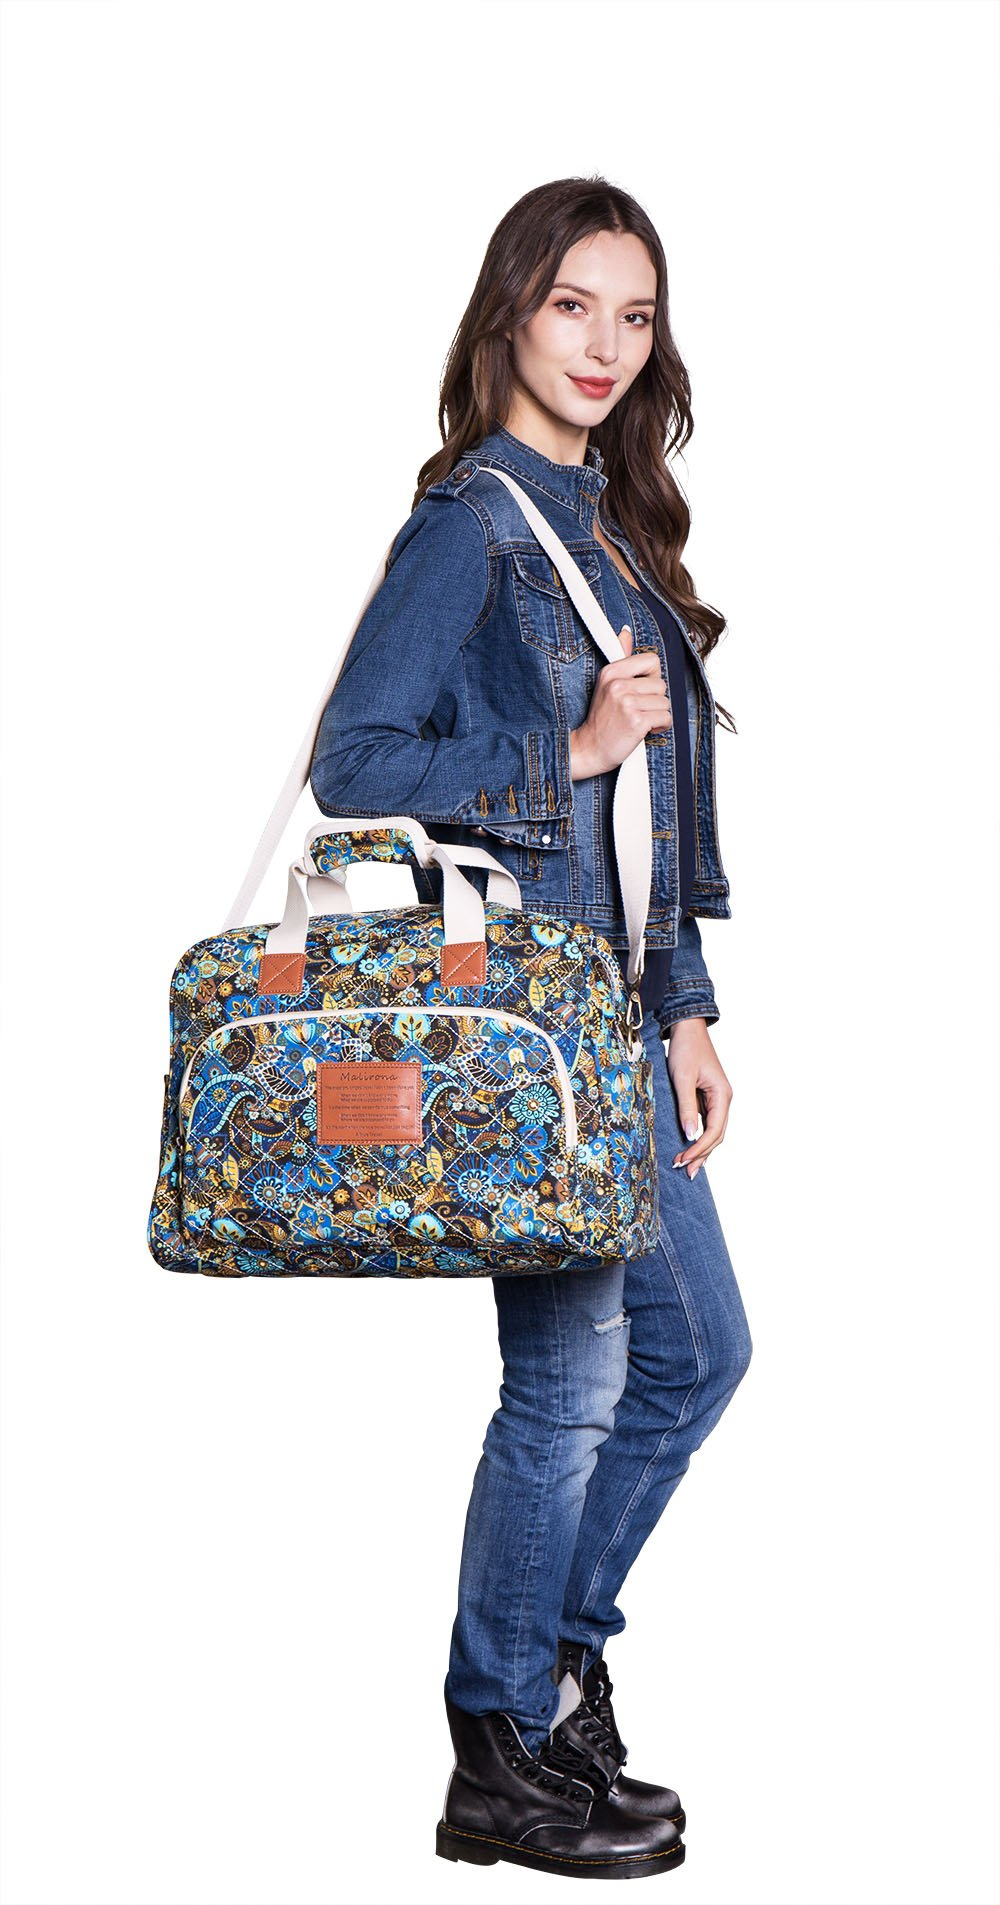 Malirona Canvas Overnight Bag Women Weekender Bag Carry On Travel Duffel Bag Floral (Black Flower) by Malirona (Image #7)